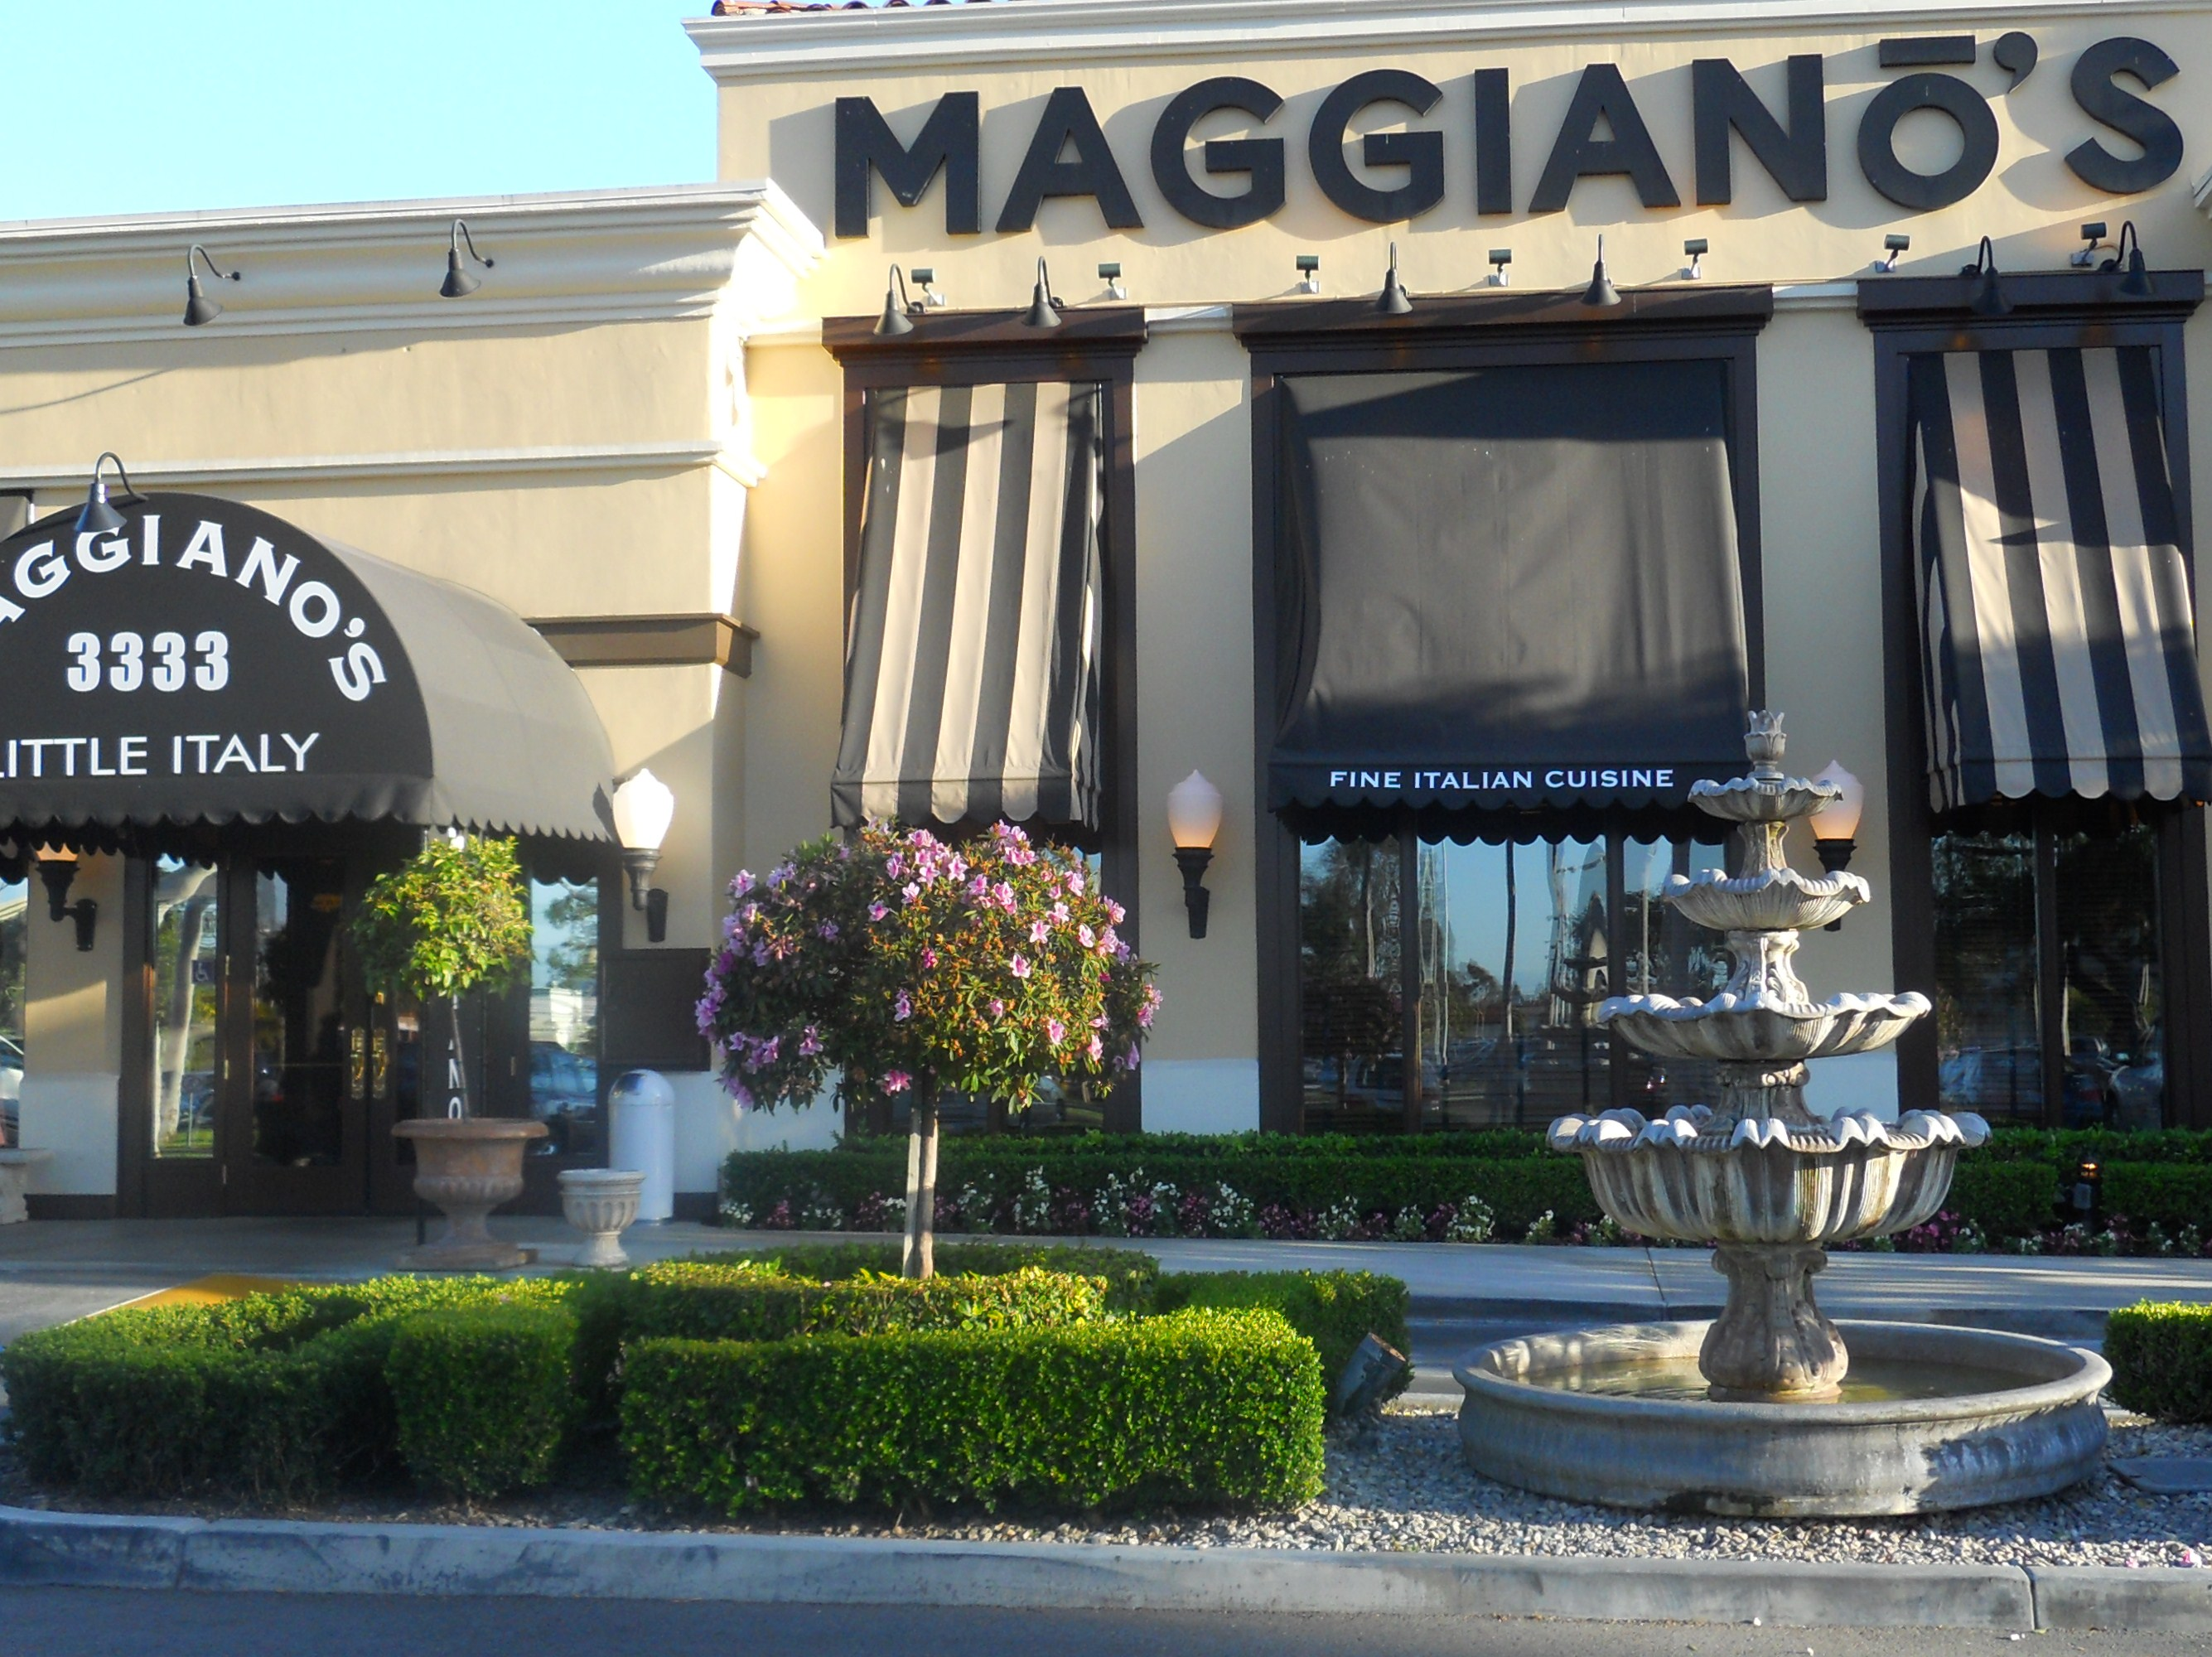 Complete Maggiano's Little Italy Store Locator. List of all Maggiano's Little Italy locations. Find hours of operation, street address, driving map, and contact information.